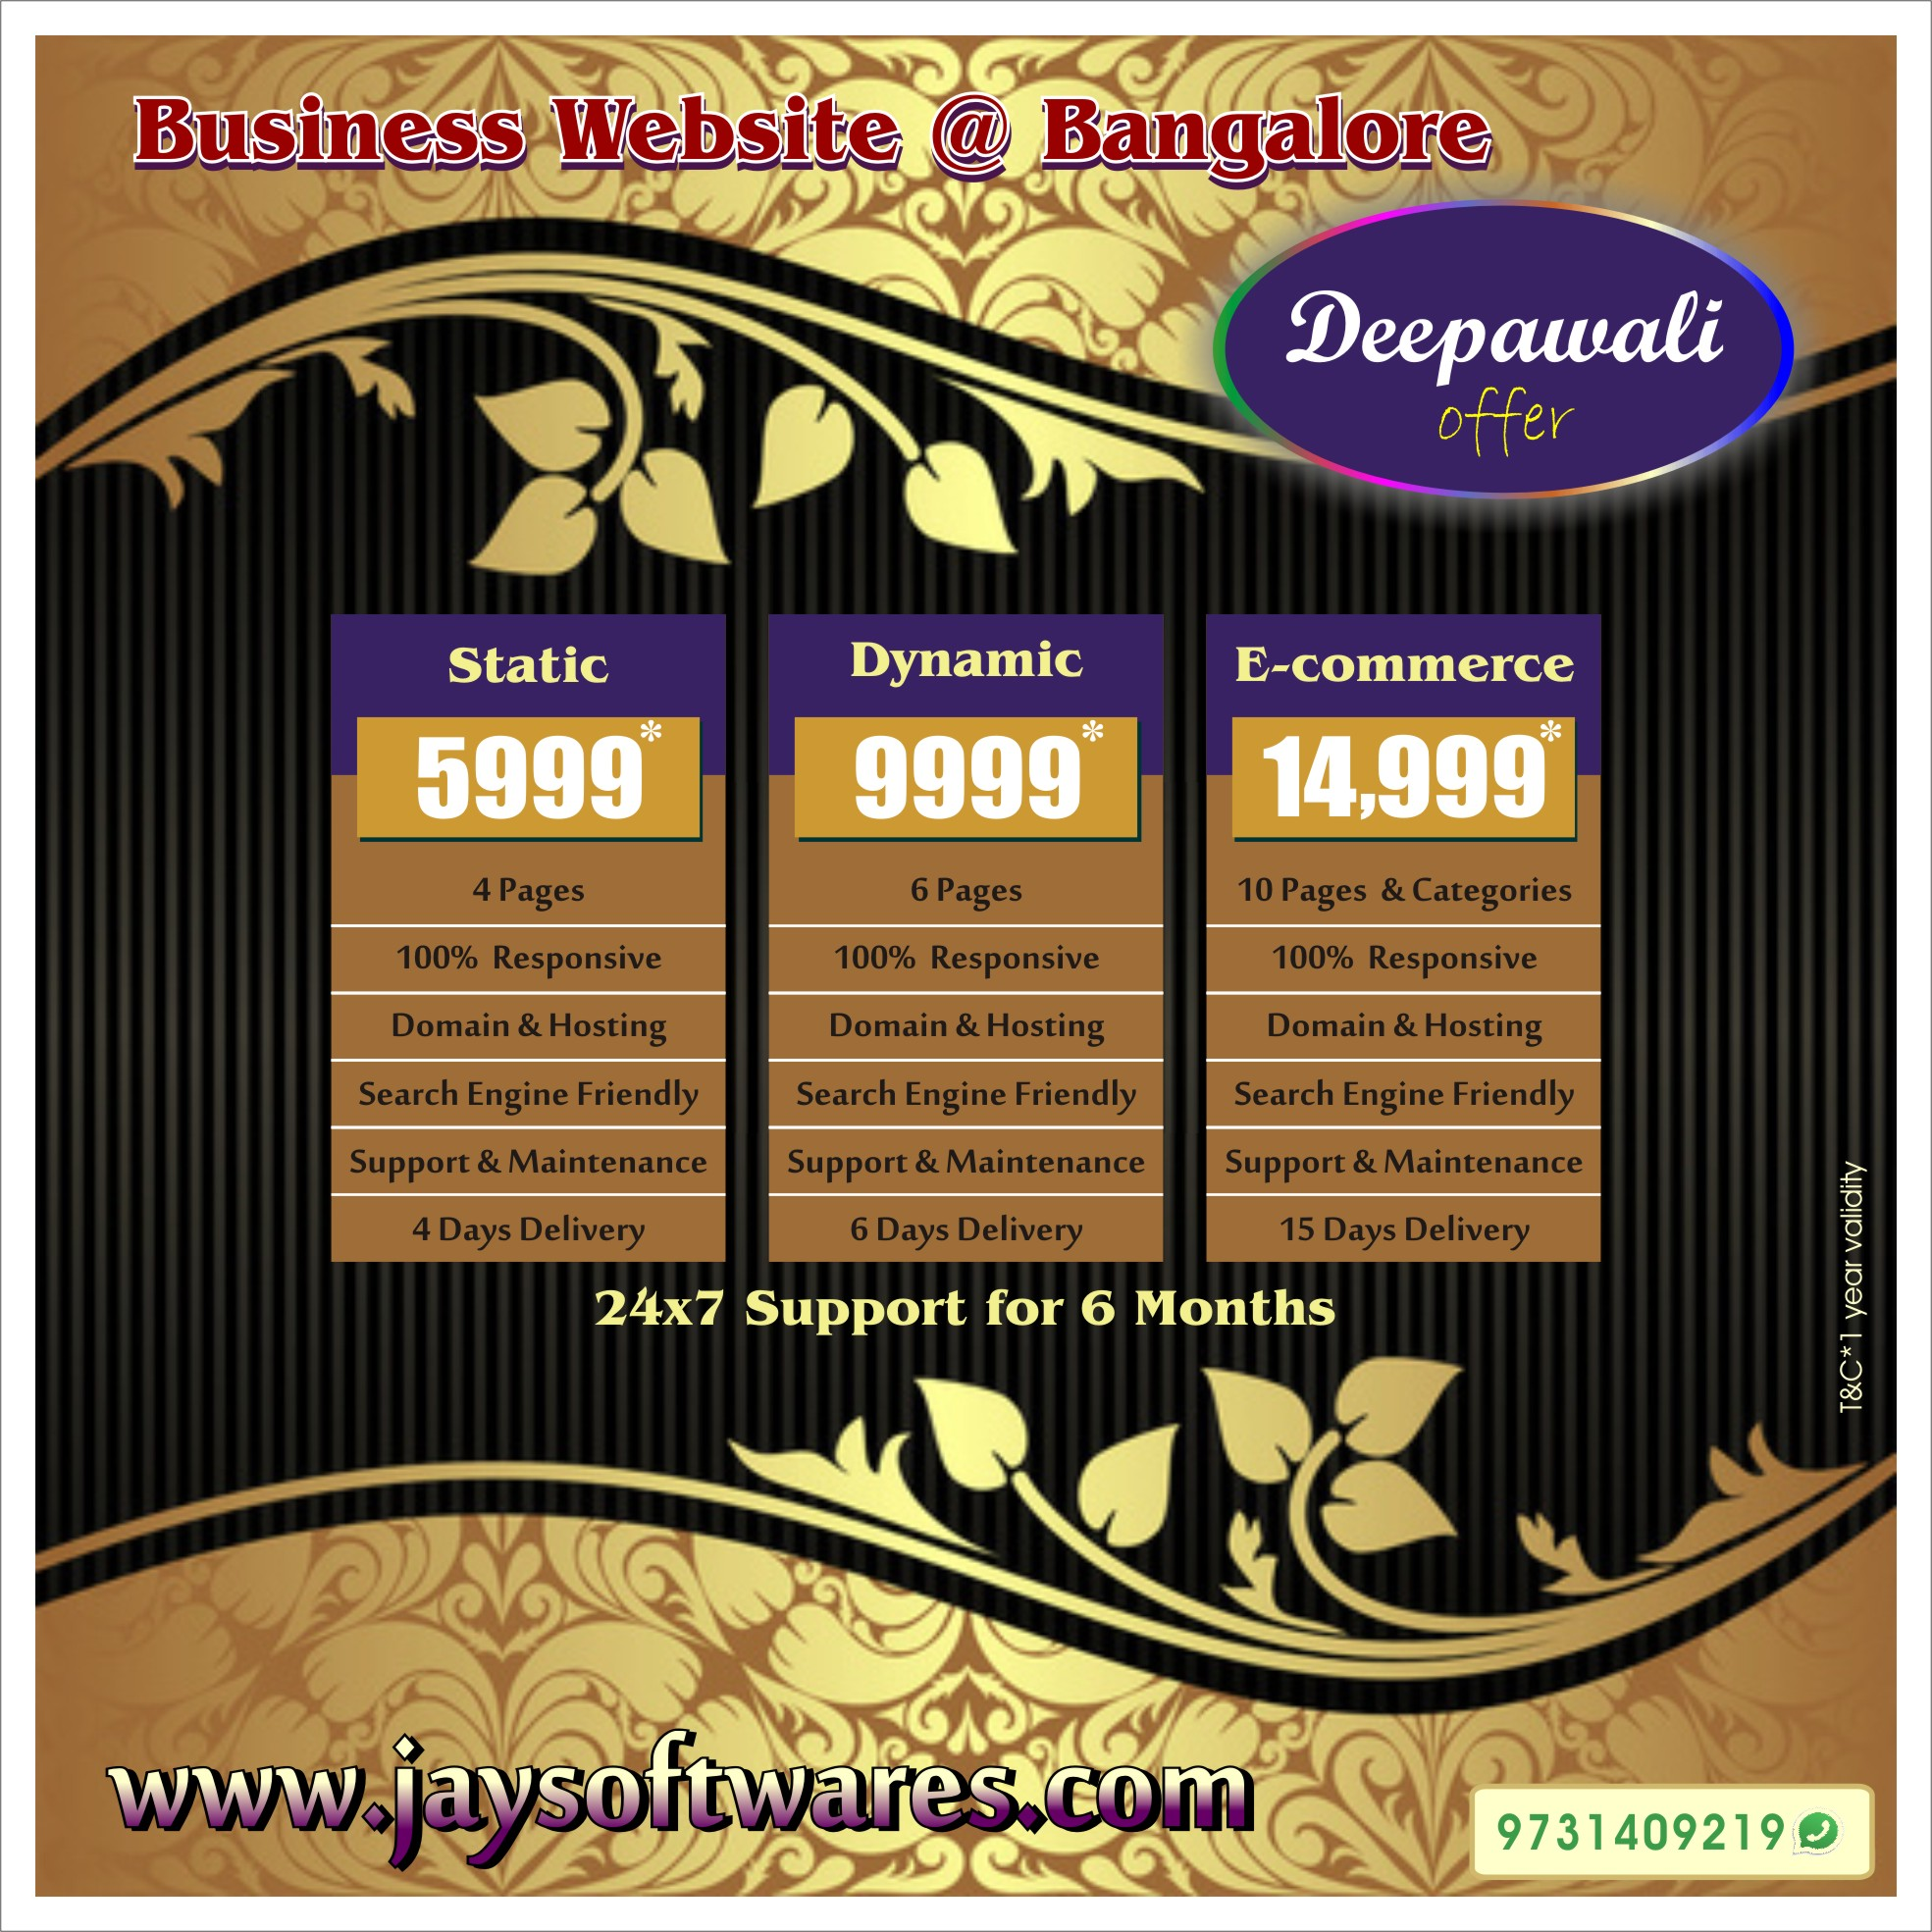 Image for Web Designing and Web site creation in Bangalore